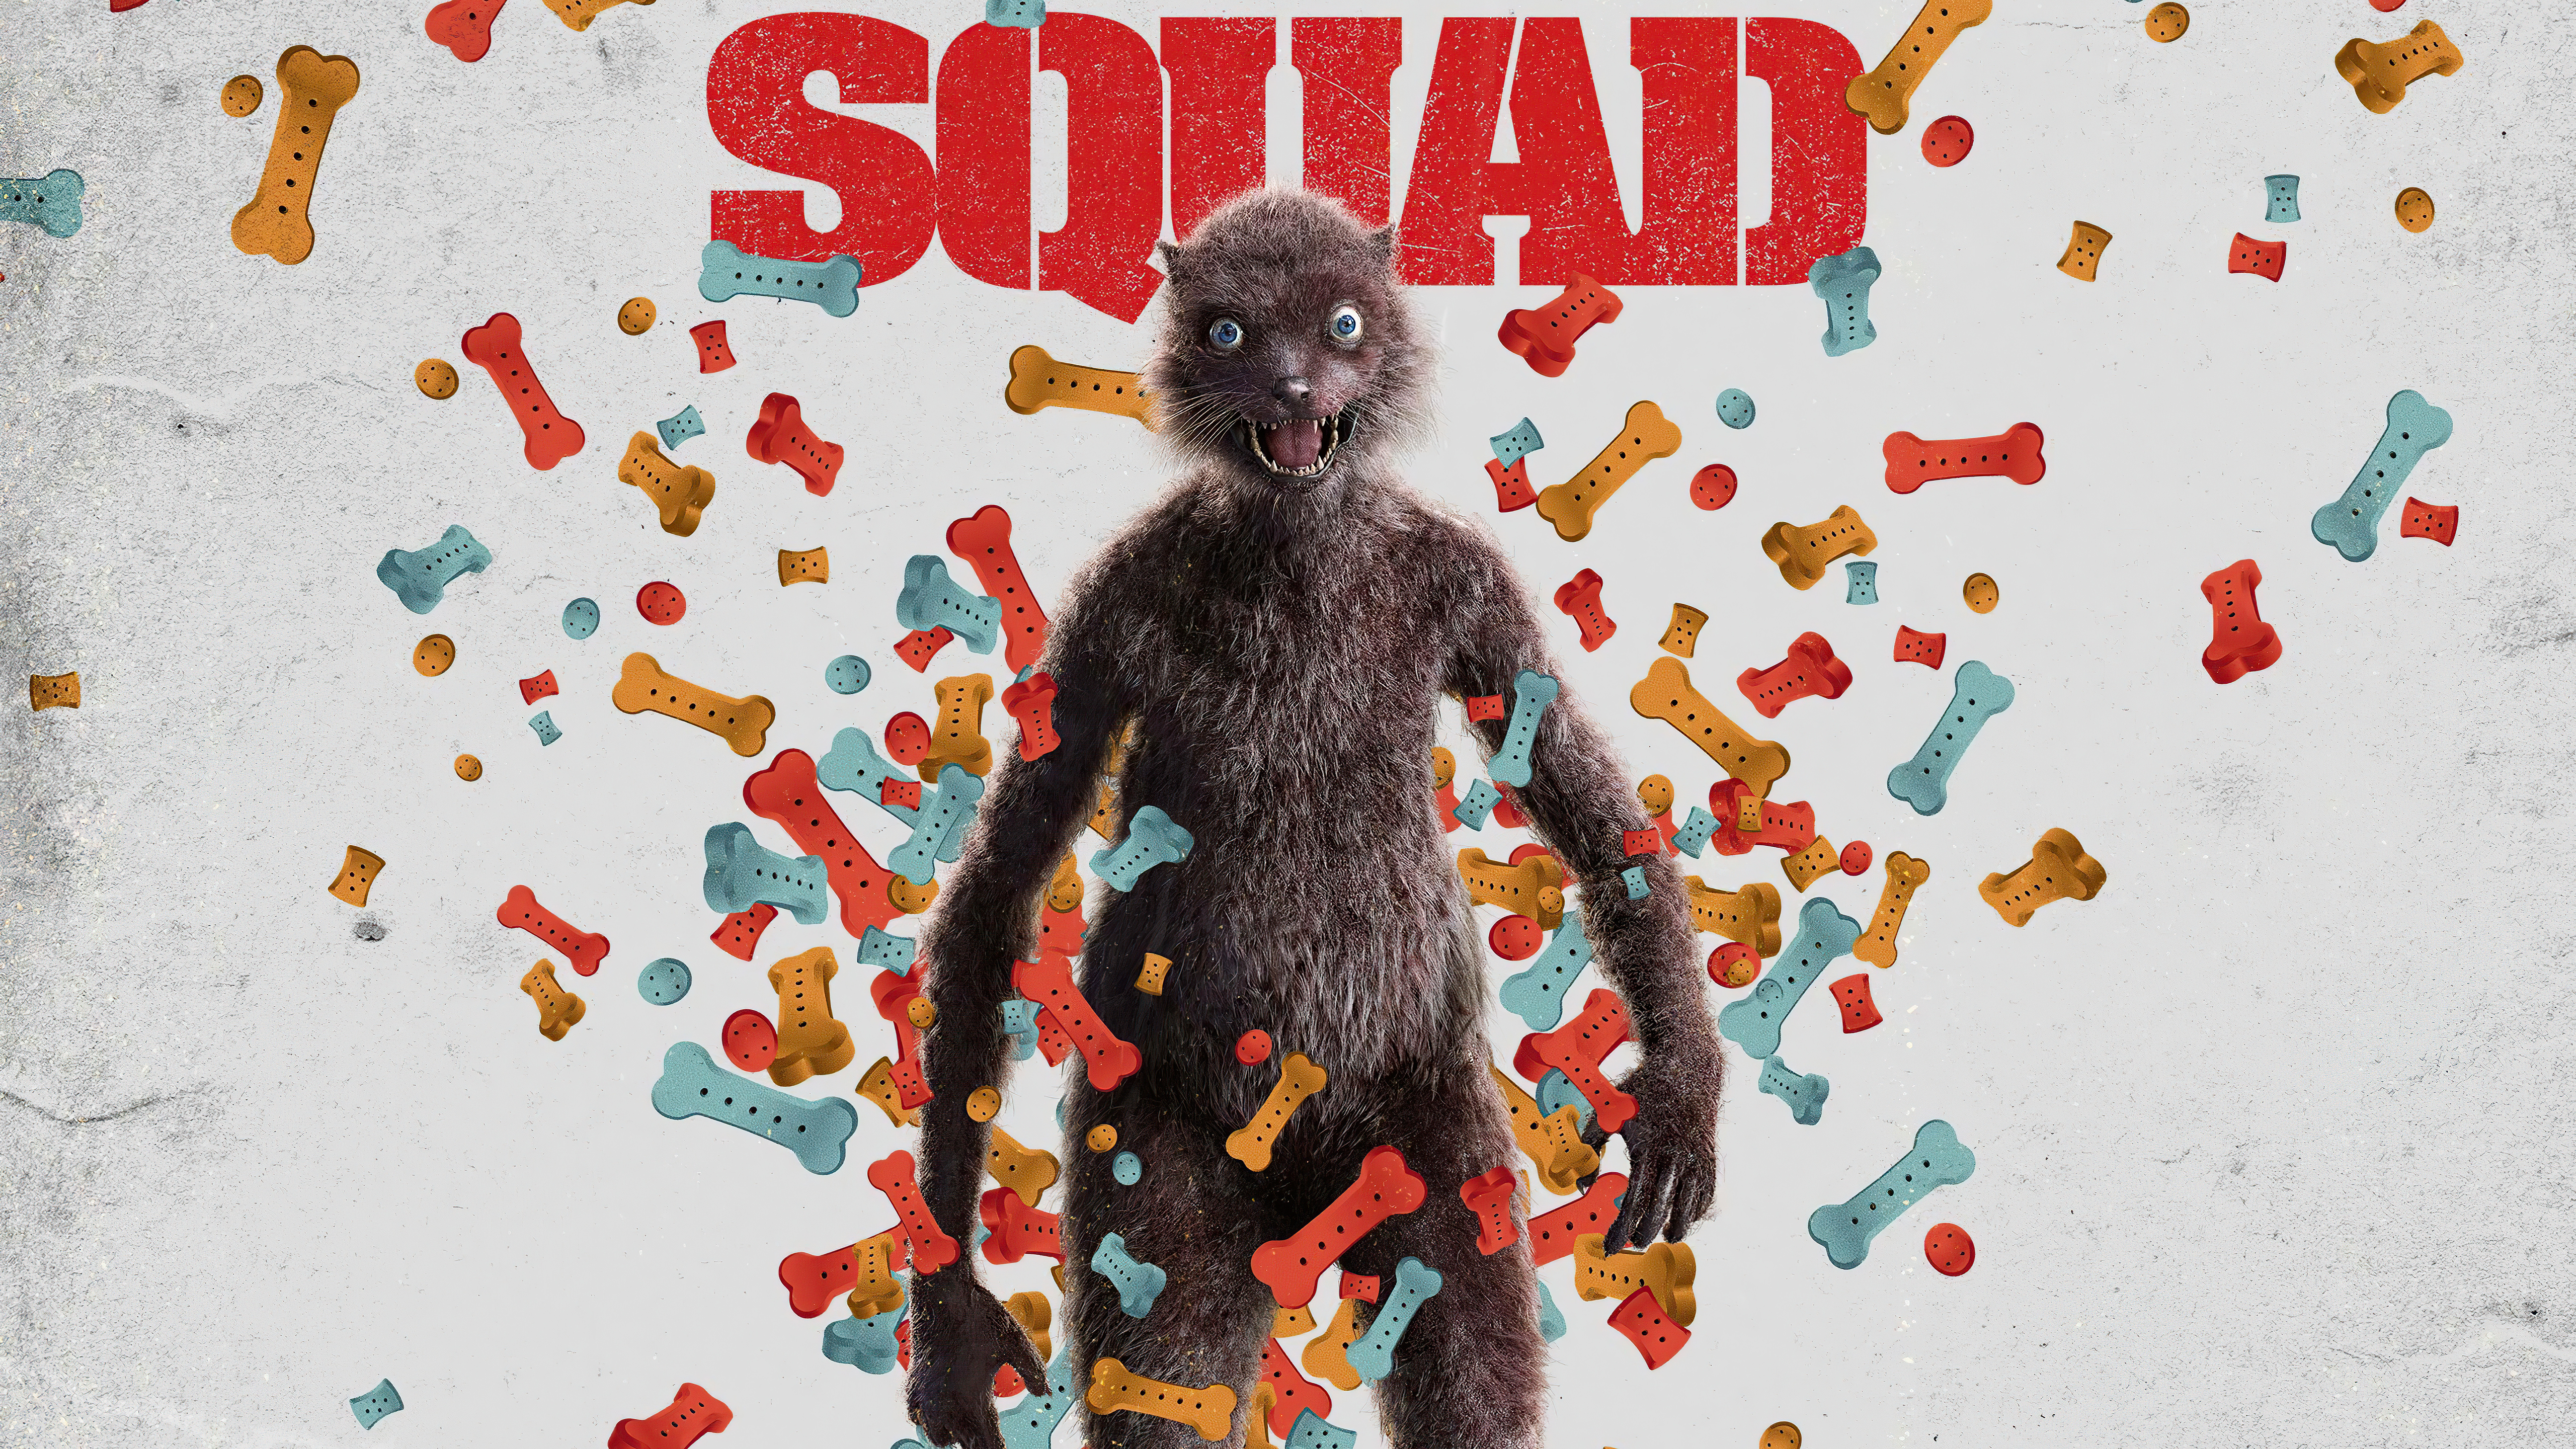 weasel the suicide squad 4k 1618166347 - Weasel The Suicide Squad 4k - Weasel The Suicide Squad 4k wallpapers